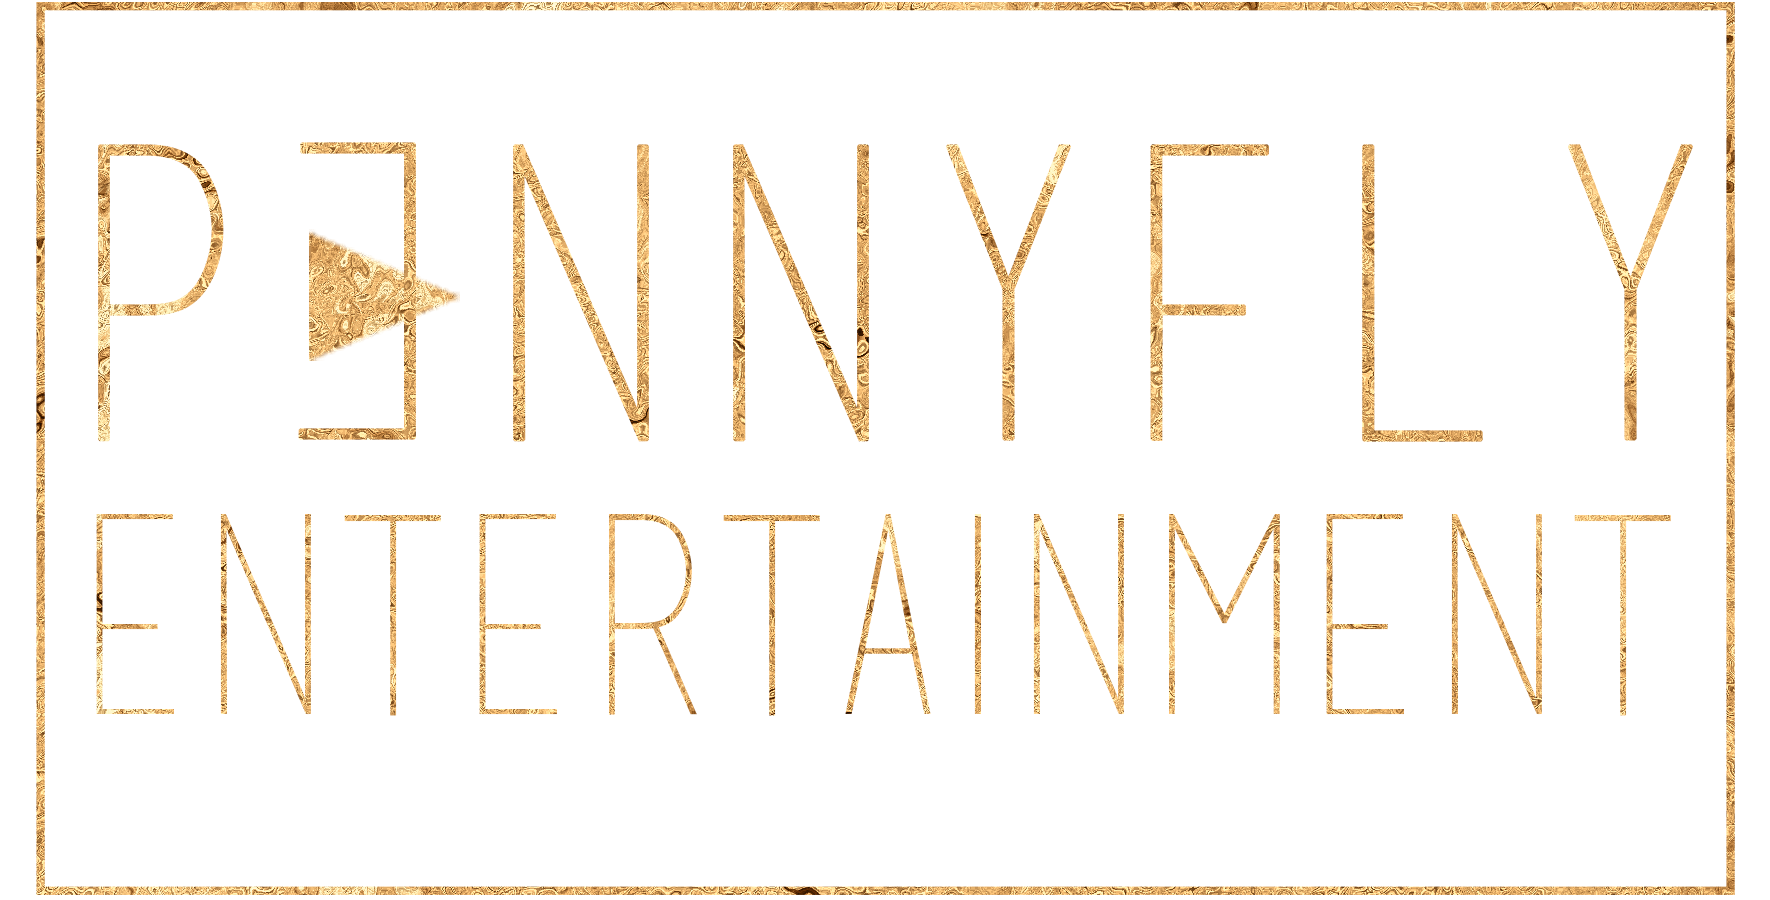 PENNYFLY_SITE_LOGO_SQARE.png